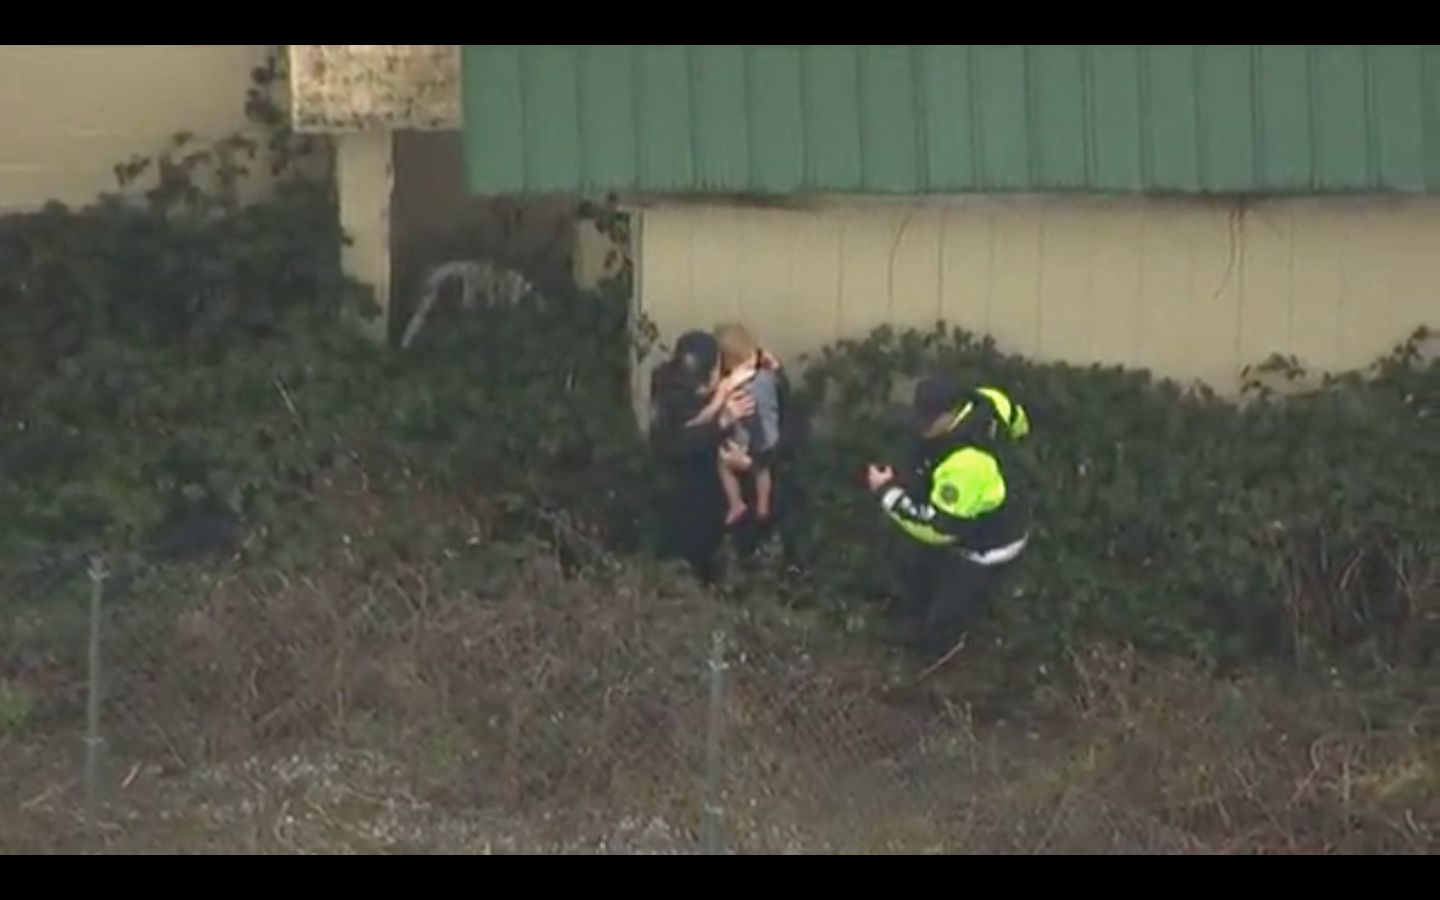 Two officers are seen recovering a 2-year-old child from some bushes after the child went missing from his Portland, Oregon h